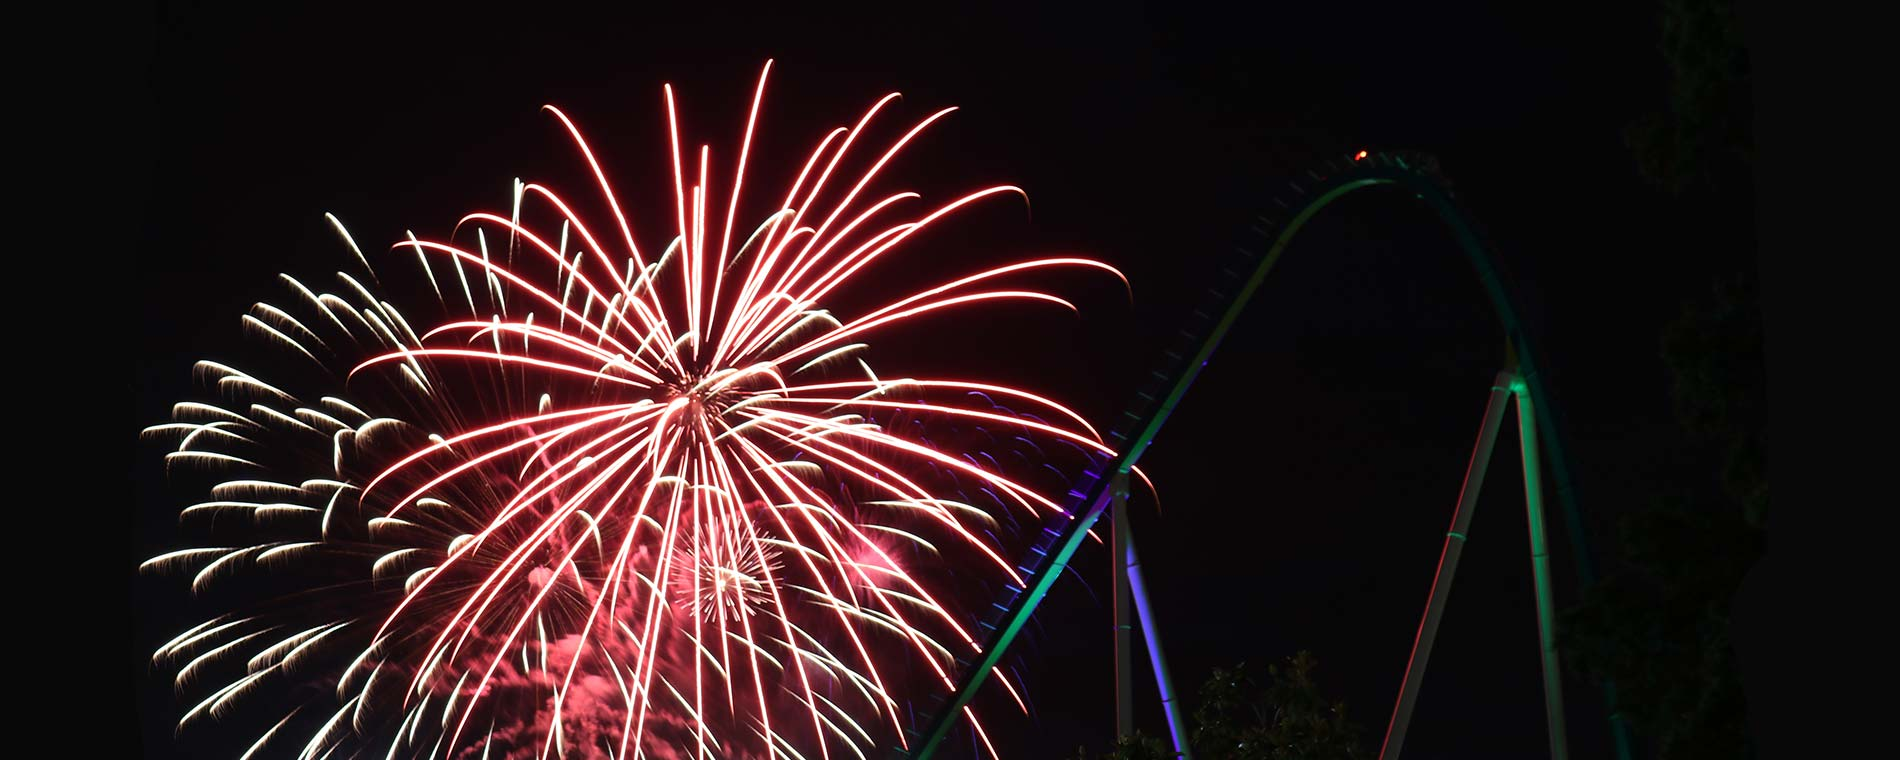 July 4th Fireworks at Carowinds